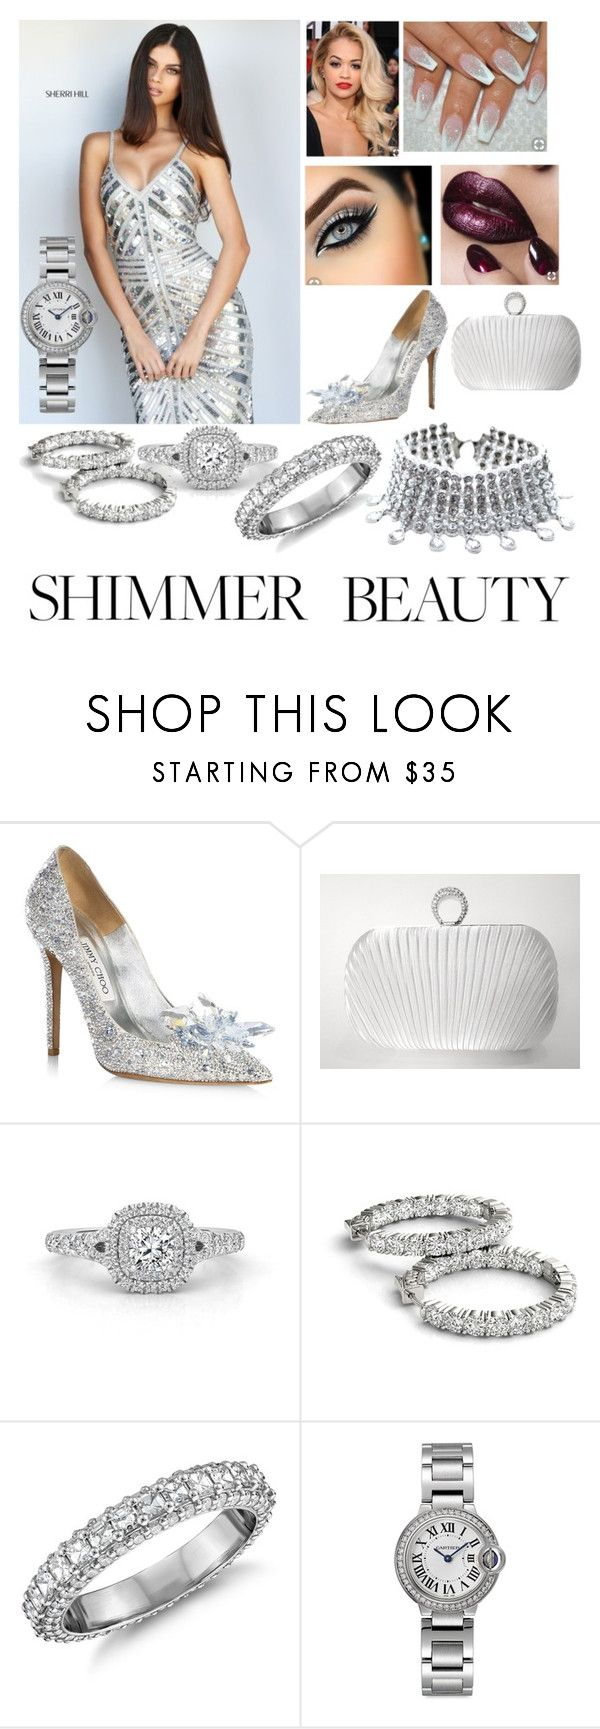 """#5"" by nikitamerchant ❤ liked on Polyvore featuring Sherri Hill, Jimmy Choo, Blue Nile, Cartier and Child Of Wild"